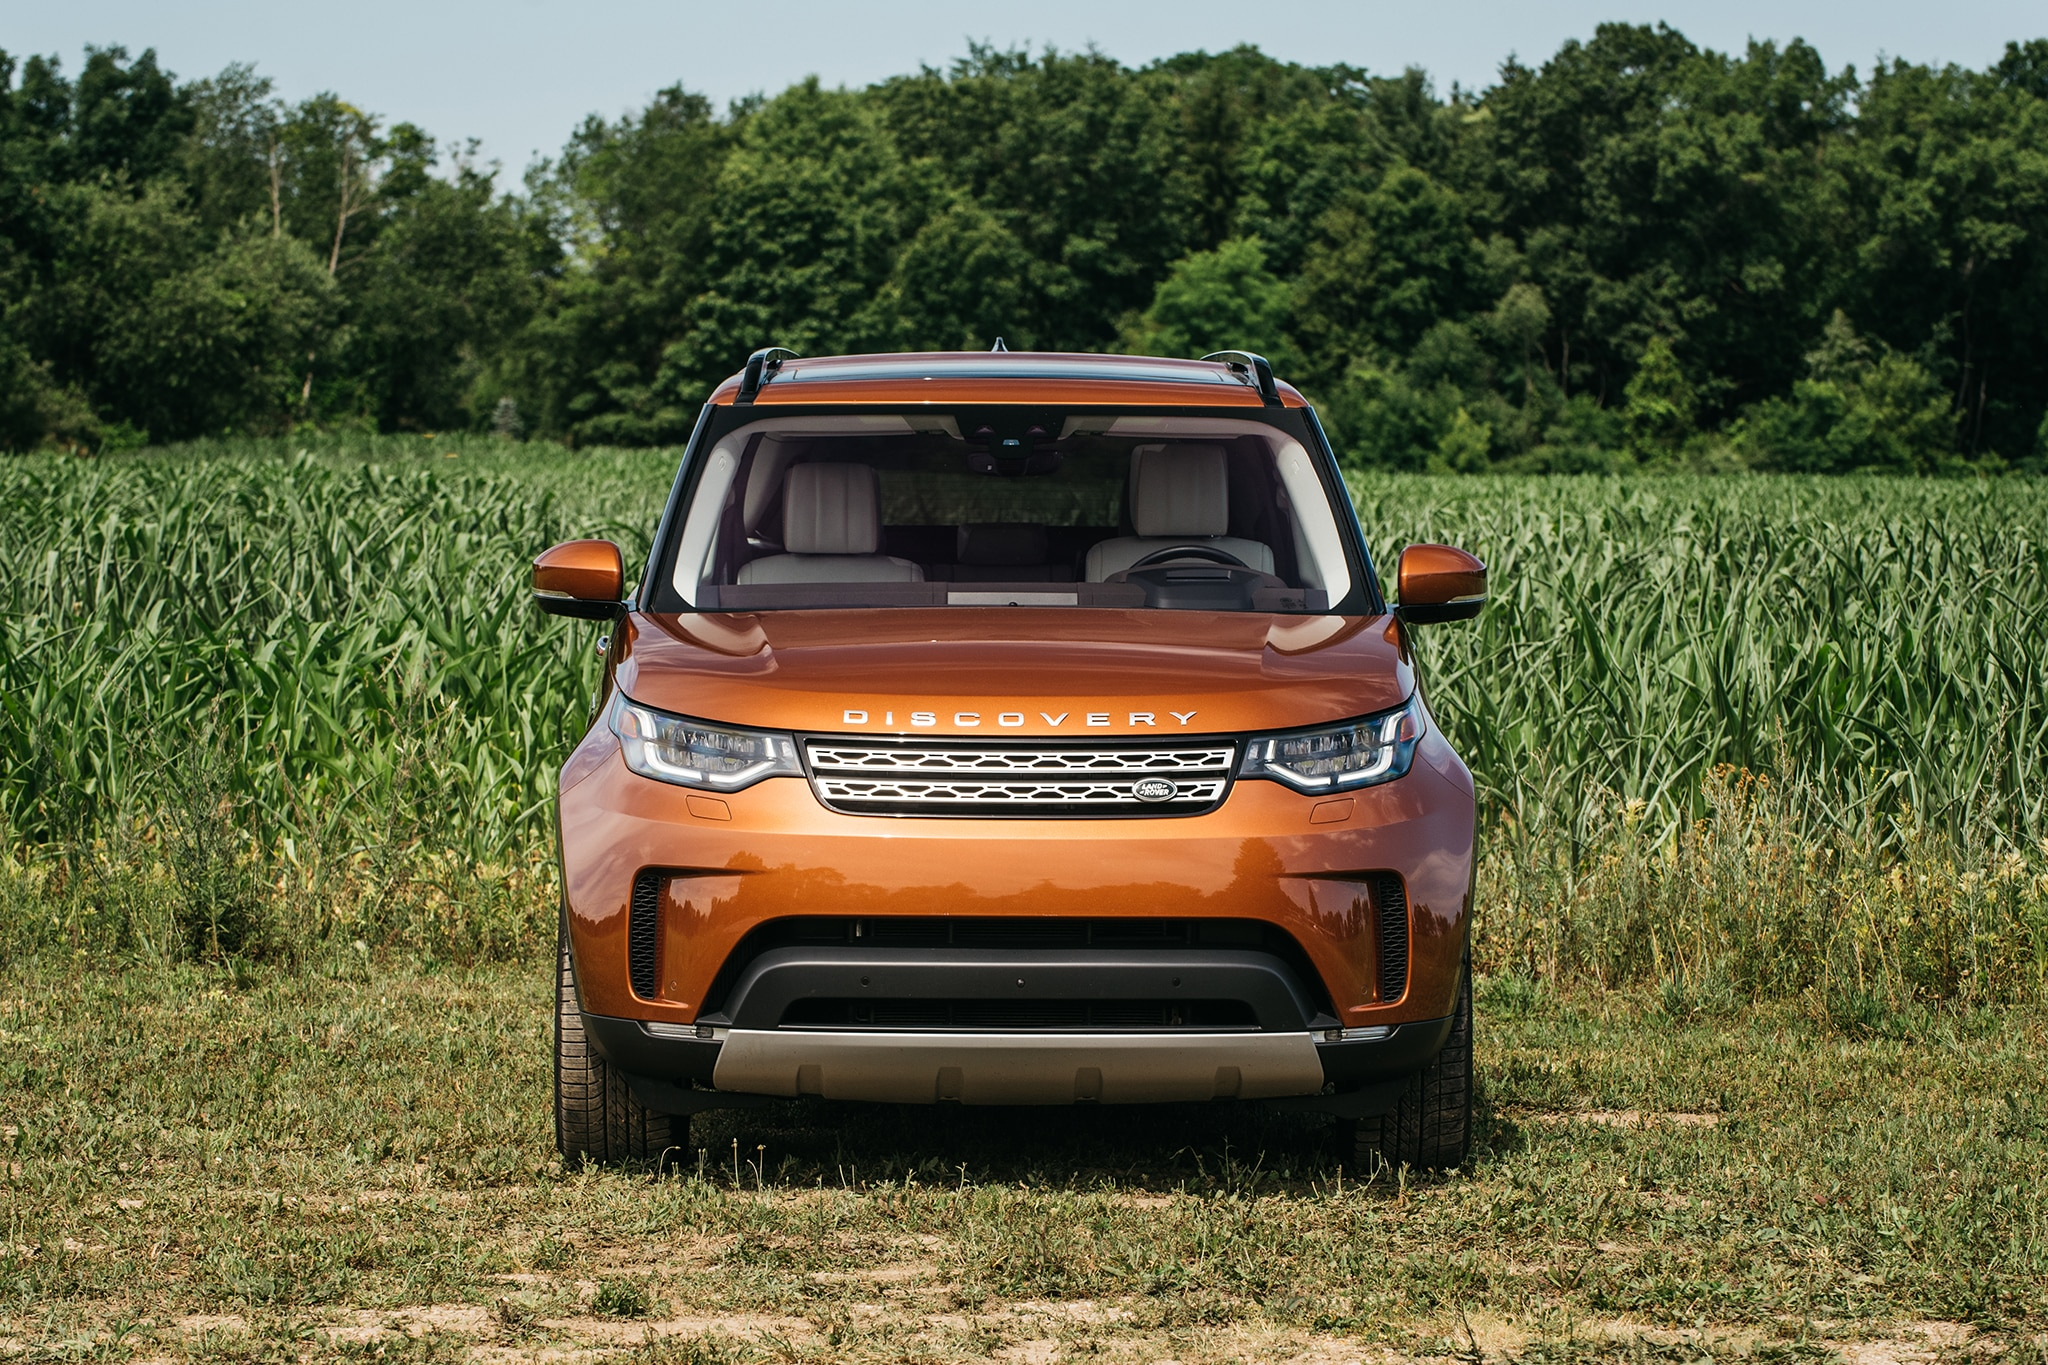 2017 Land Rover Discovery Td6 HSE Front View 01